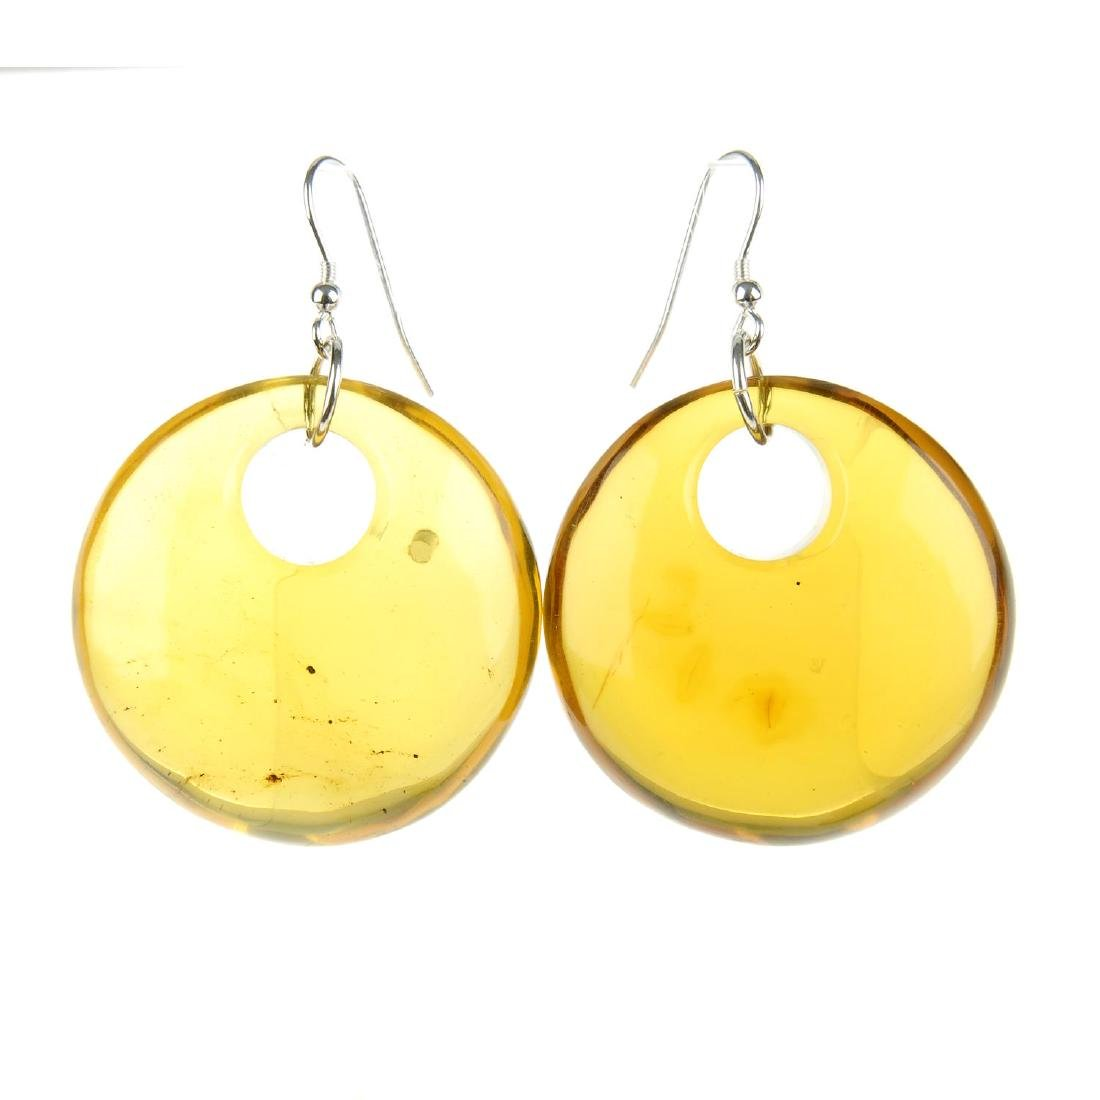 A pair of natural Dominican Republic amber earrings and